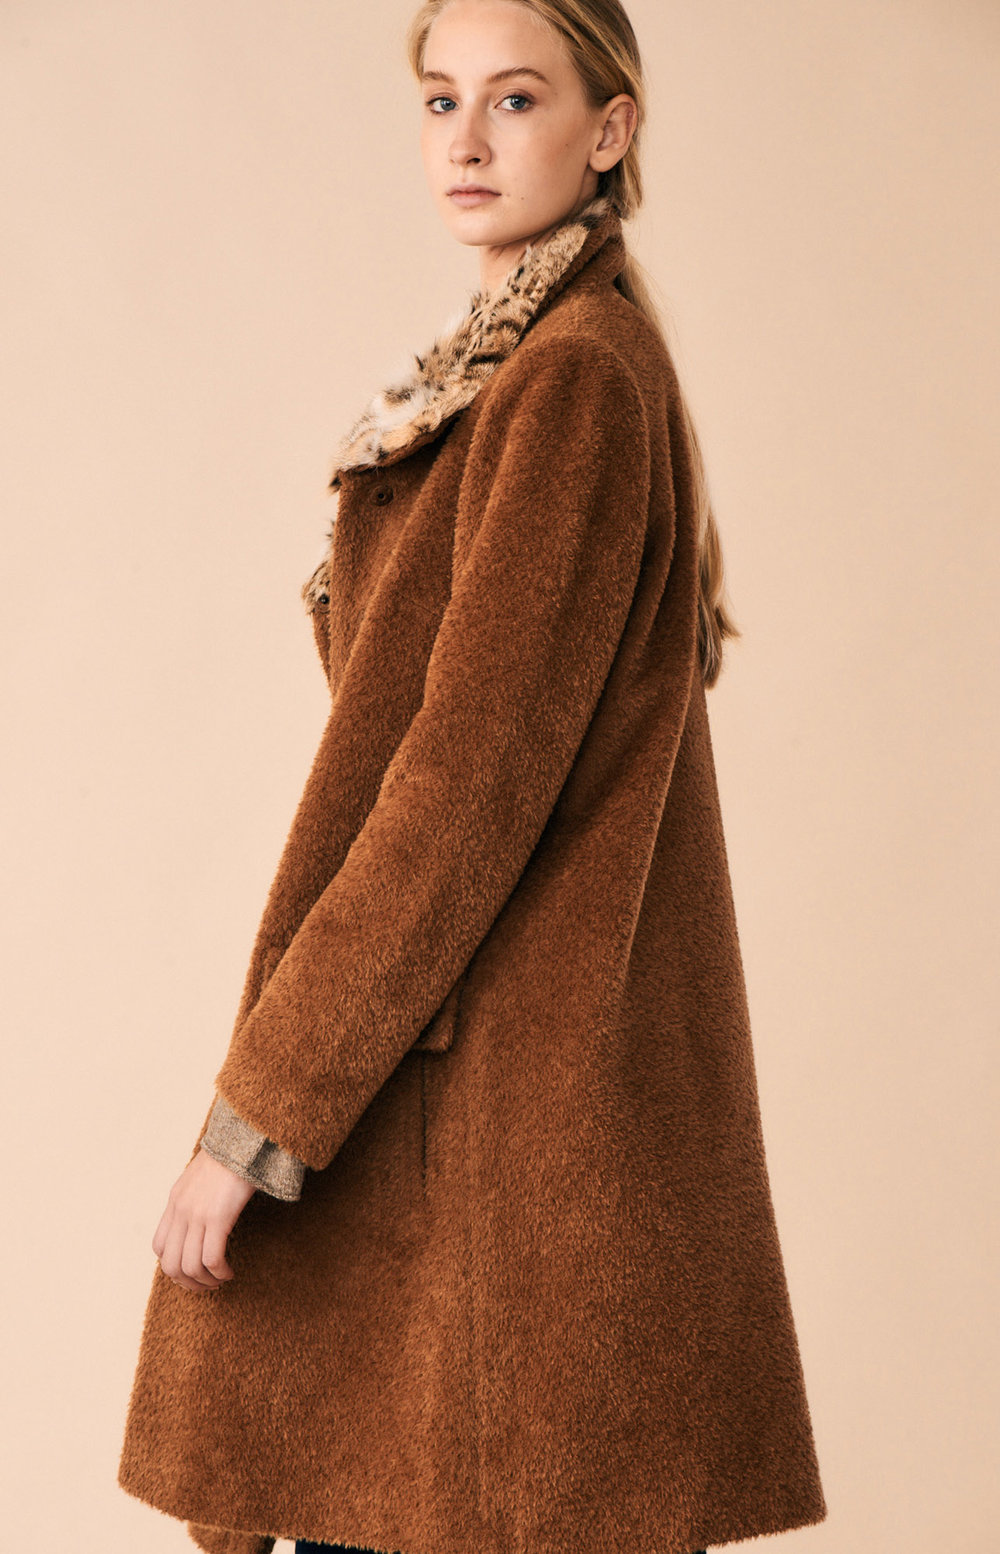 COAT ALIDA WITH FUR AT-329   Colors:  camel , blue  Sizes: XS, S, M, L, XL